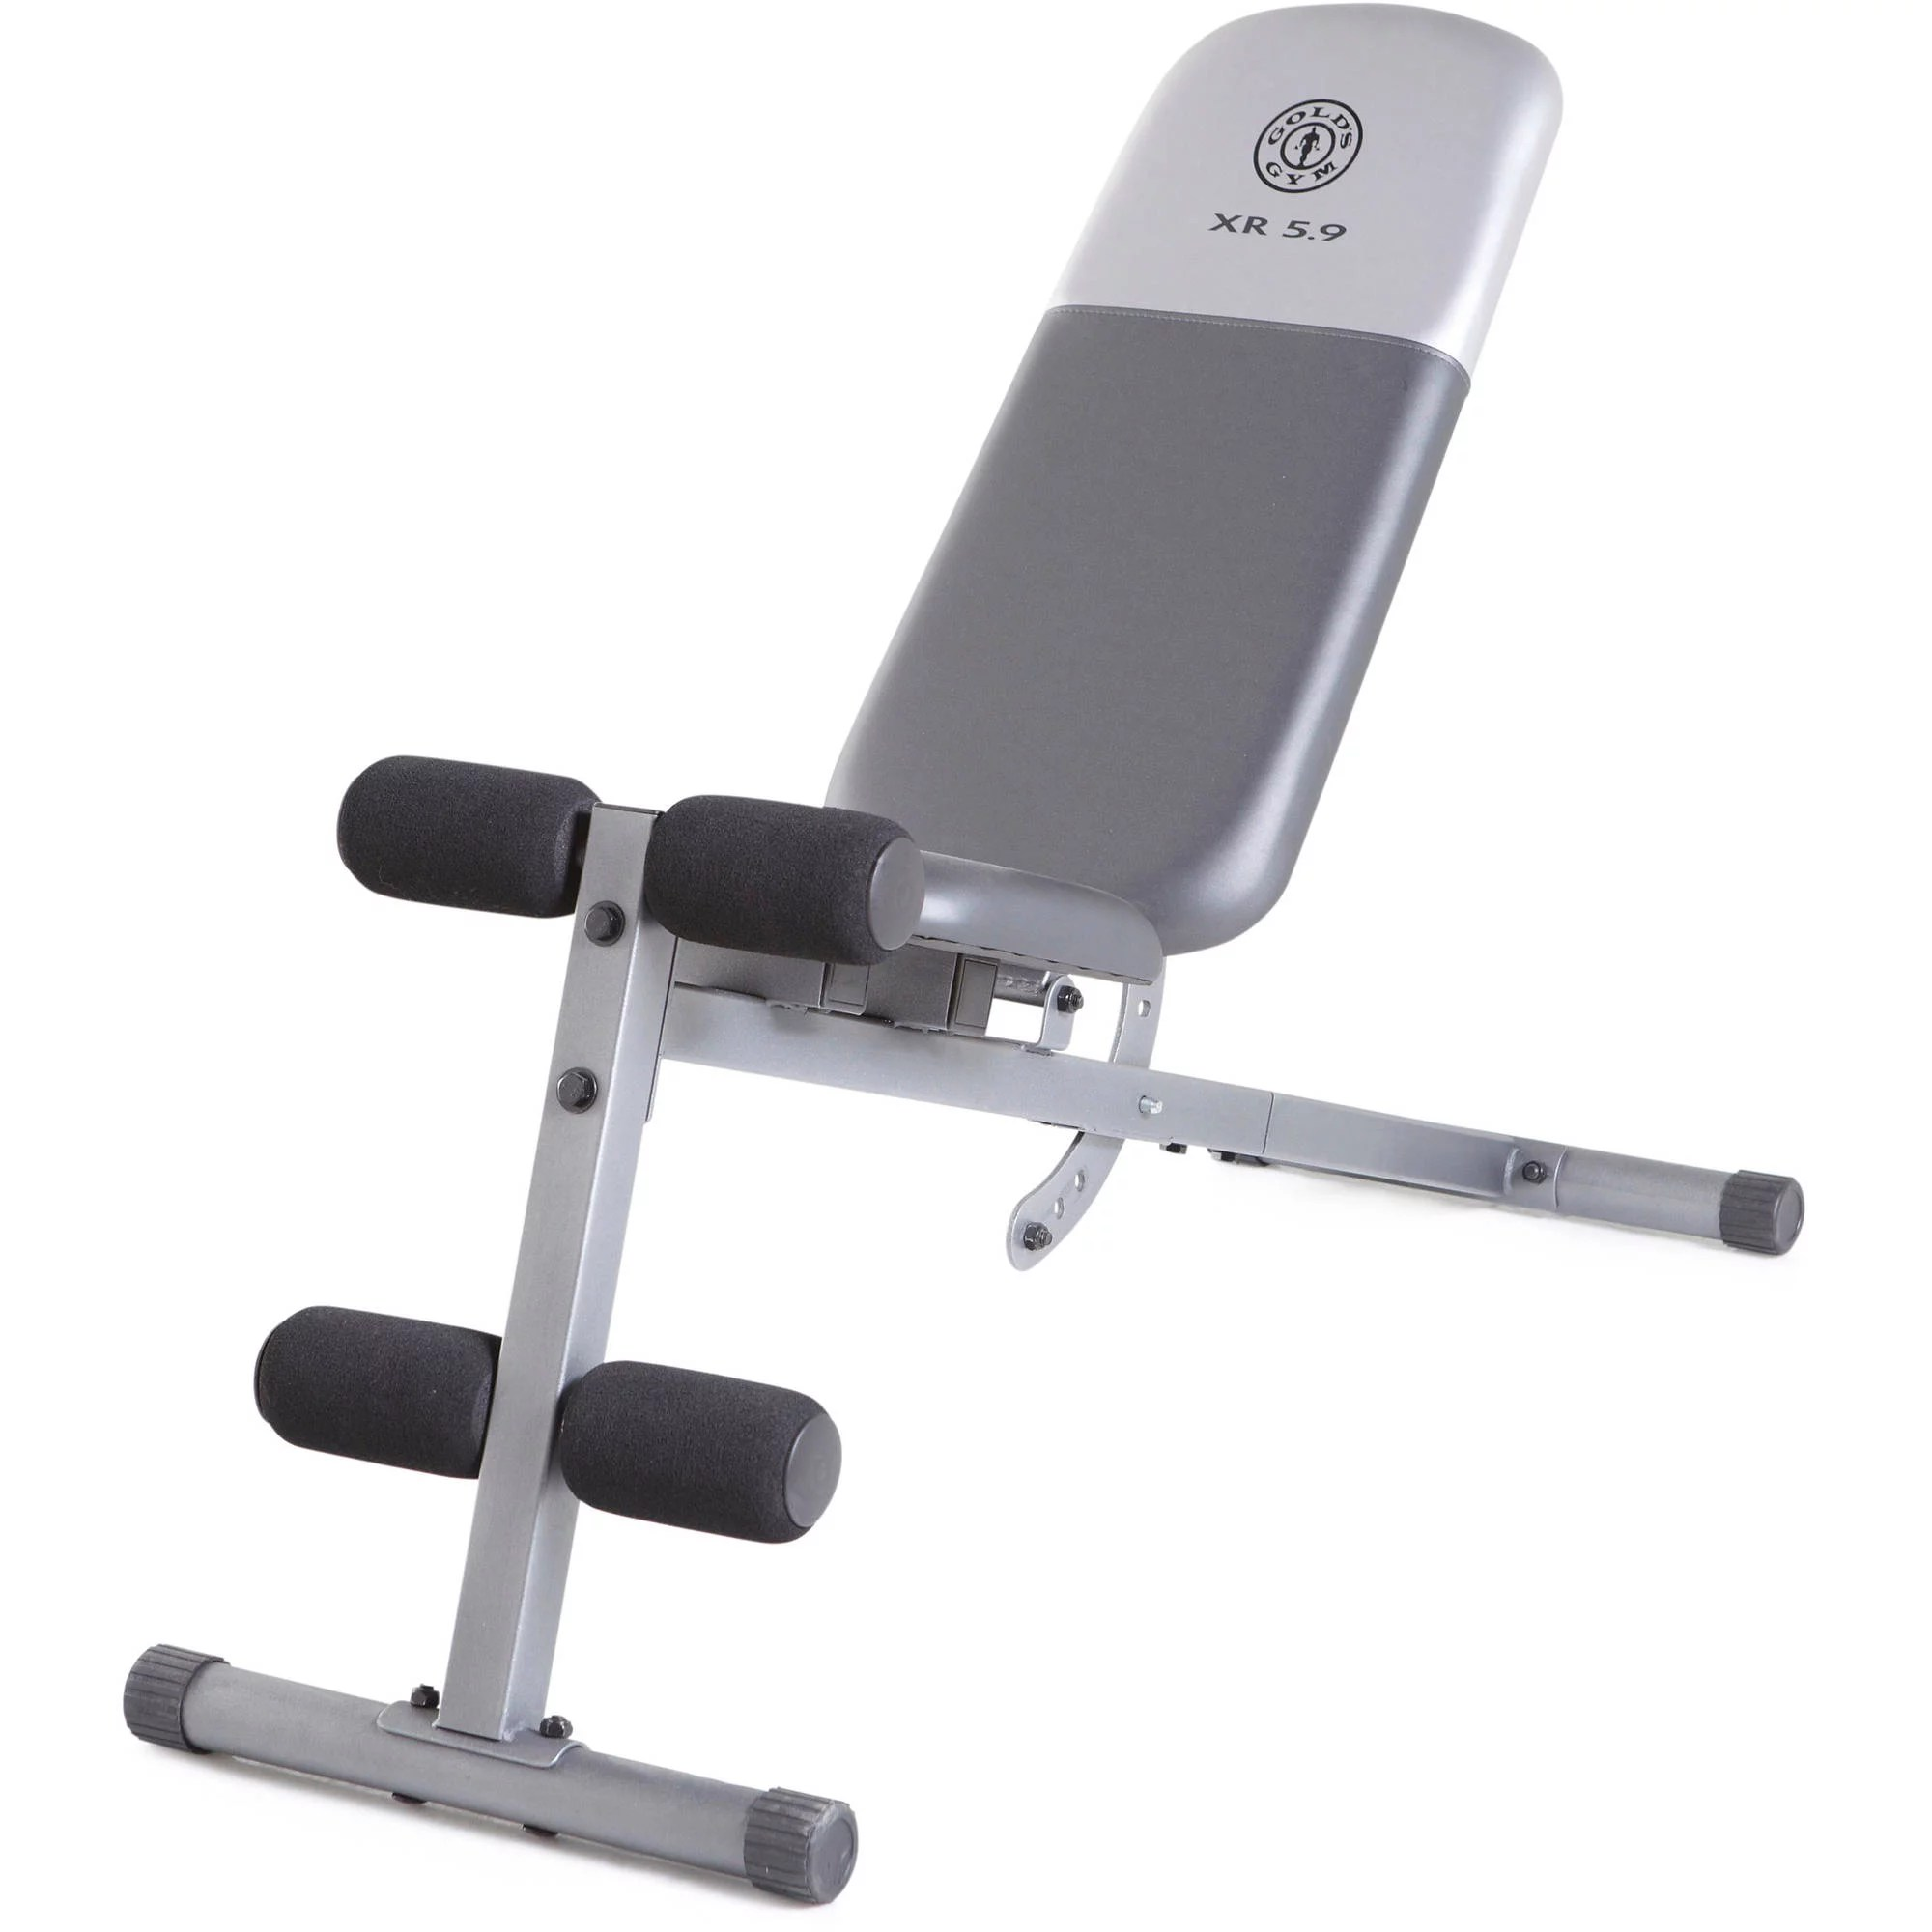 chair gym reviews twin sofa bed gold s xr 5 9 adjustable slant workout weight bench walmart com